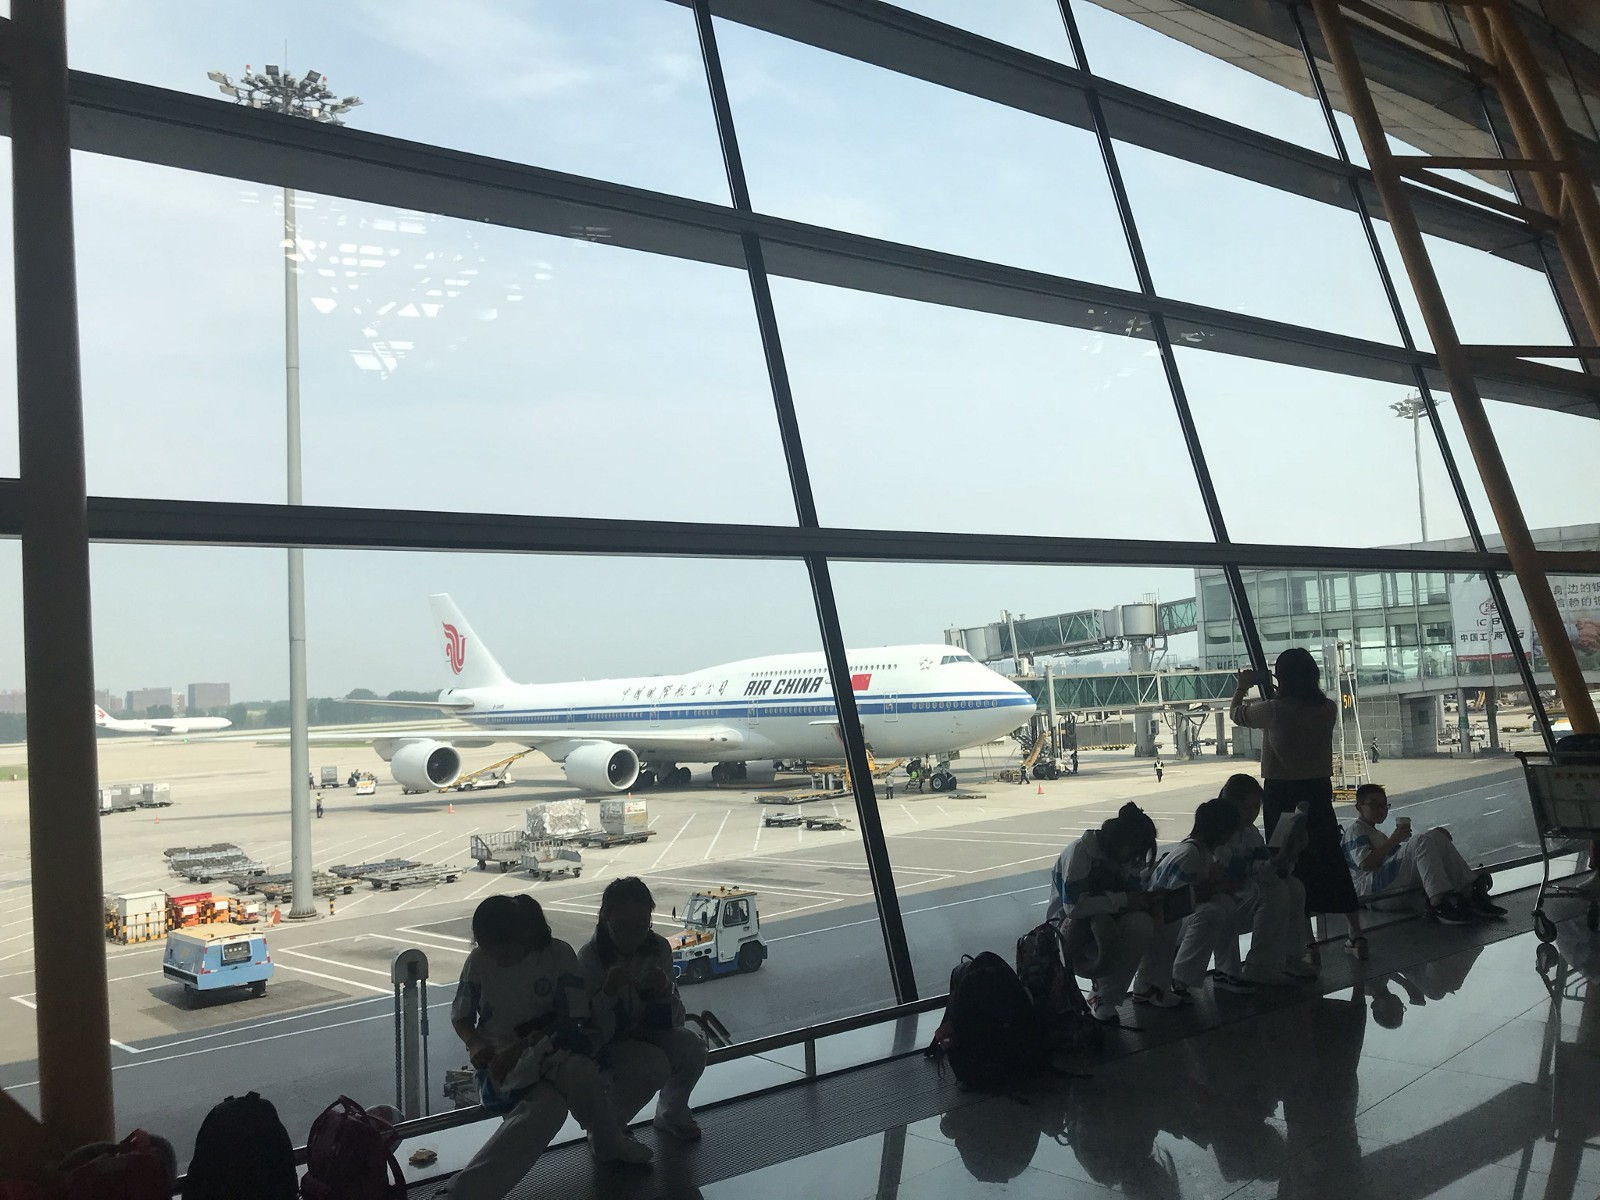 Air China plane in Beijing.